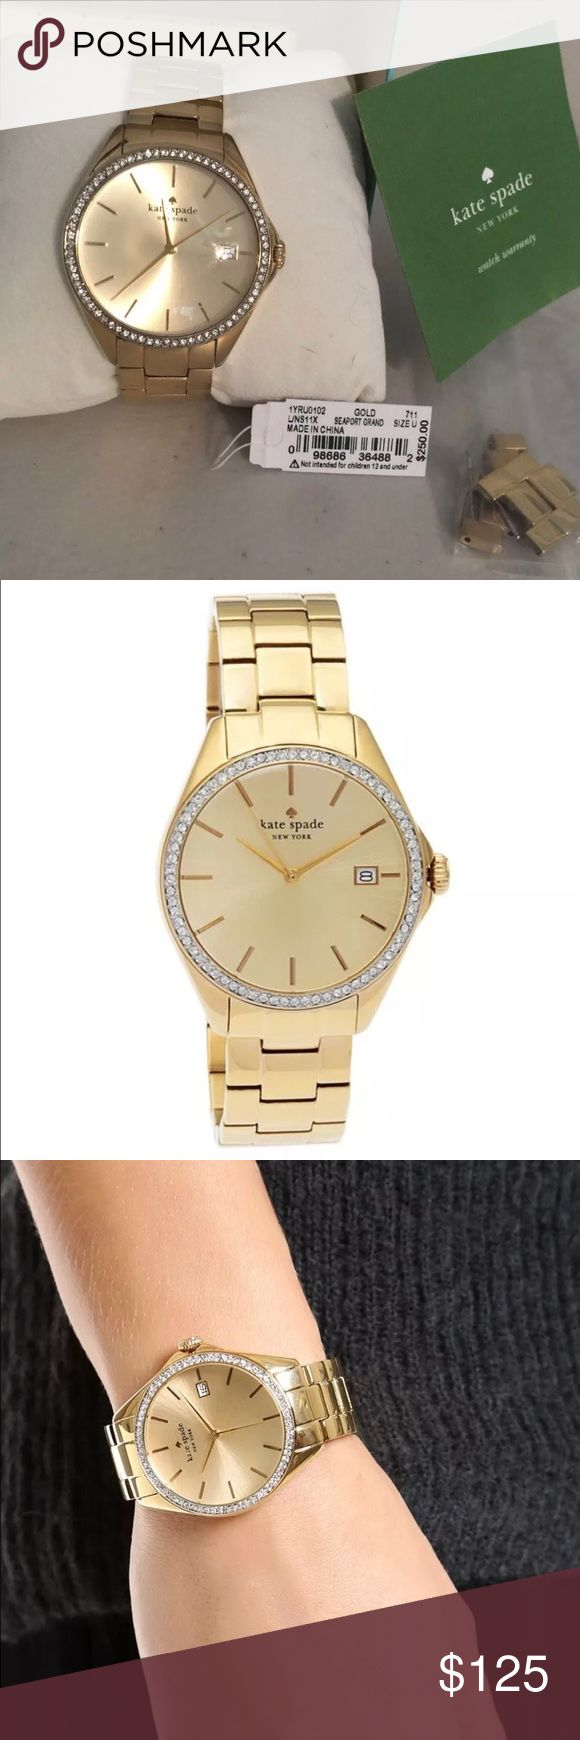 Kate Spade Seaport Grand Gold Watch With Crystals EUC! Minor scratch on face around 5, please see photo. Kate Spade Seaport Grand gold tone watch with Crystals kate spade Accessories Watches